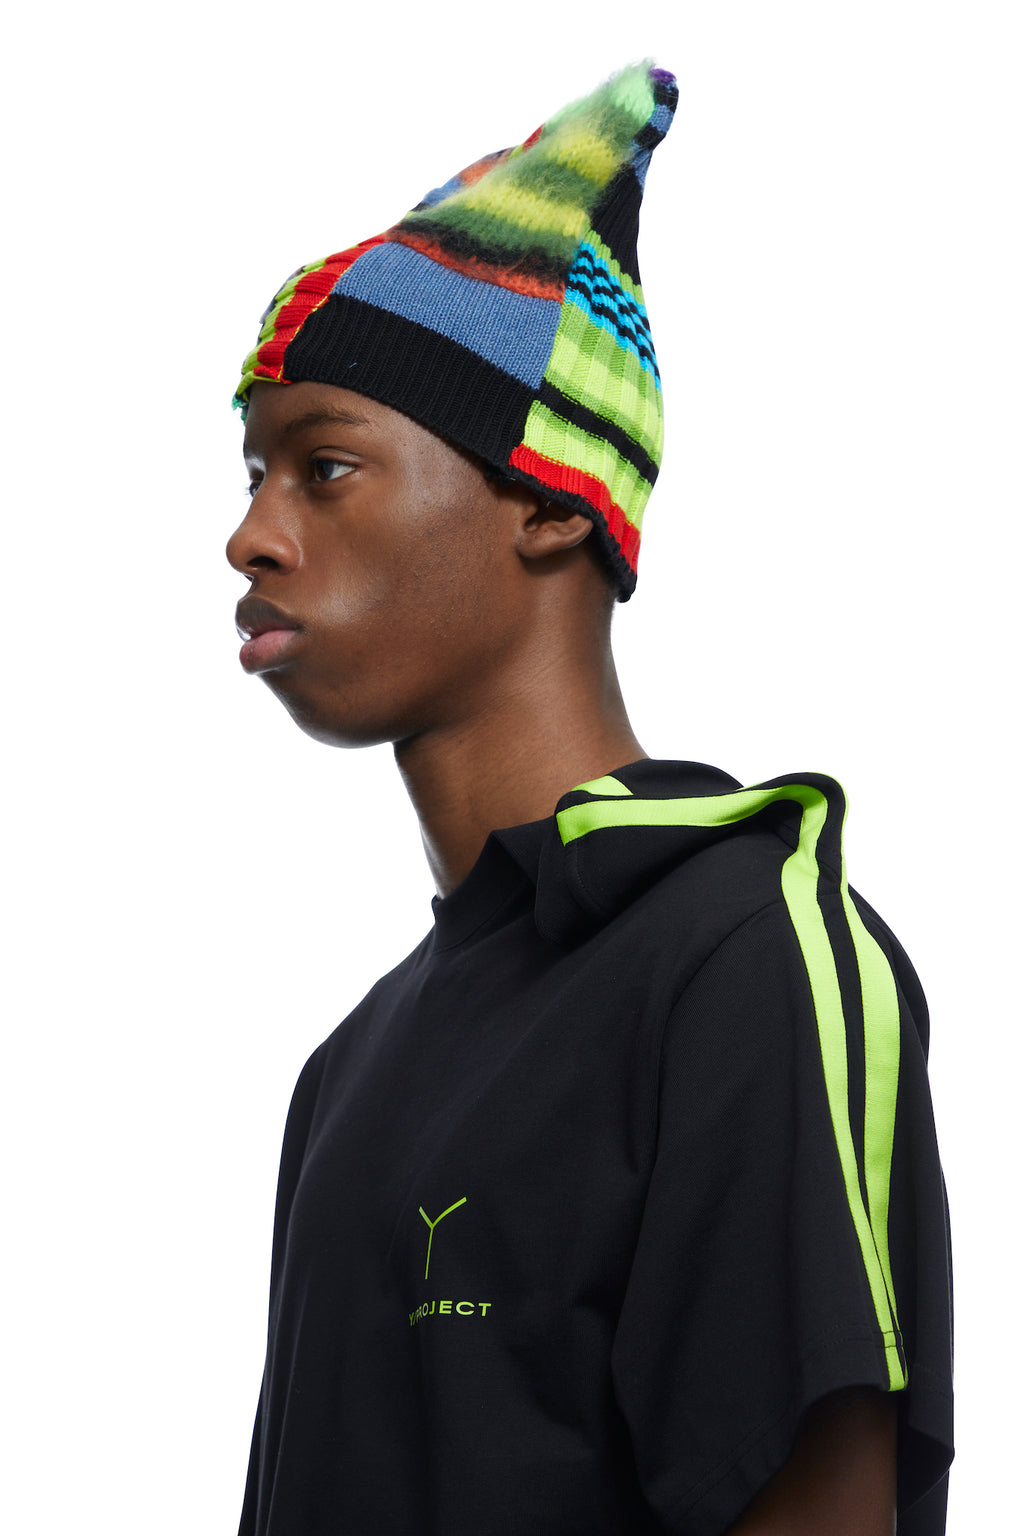 HTOWN, AGR, AGR MENSWEAR, HTOWN AGR, AGR HOODIE, AGR PATCHWORK BEANIE, PATCHWORK BEANIE, AGR PATCHWORK, AGR BEANIE, AGR HAT, LONDON DESIGNER, LONDON BOUTIQUE, SPRING SUMMER 2021, SS21, LUXURY DESIGNER, LUXURY FASHION, MEN'S LUXURY BEANIE, LUXURY BEANIE, LUXURY HAT